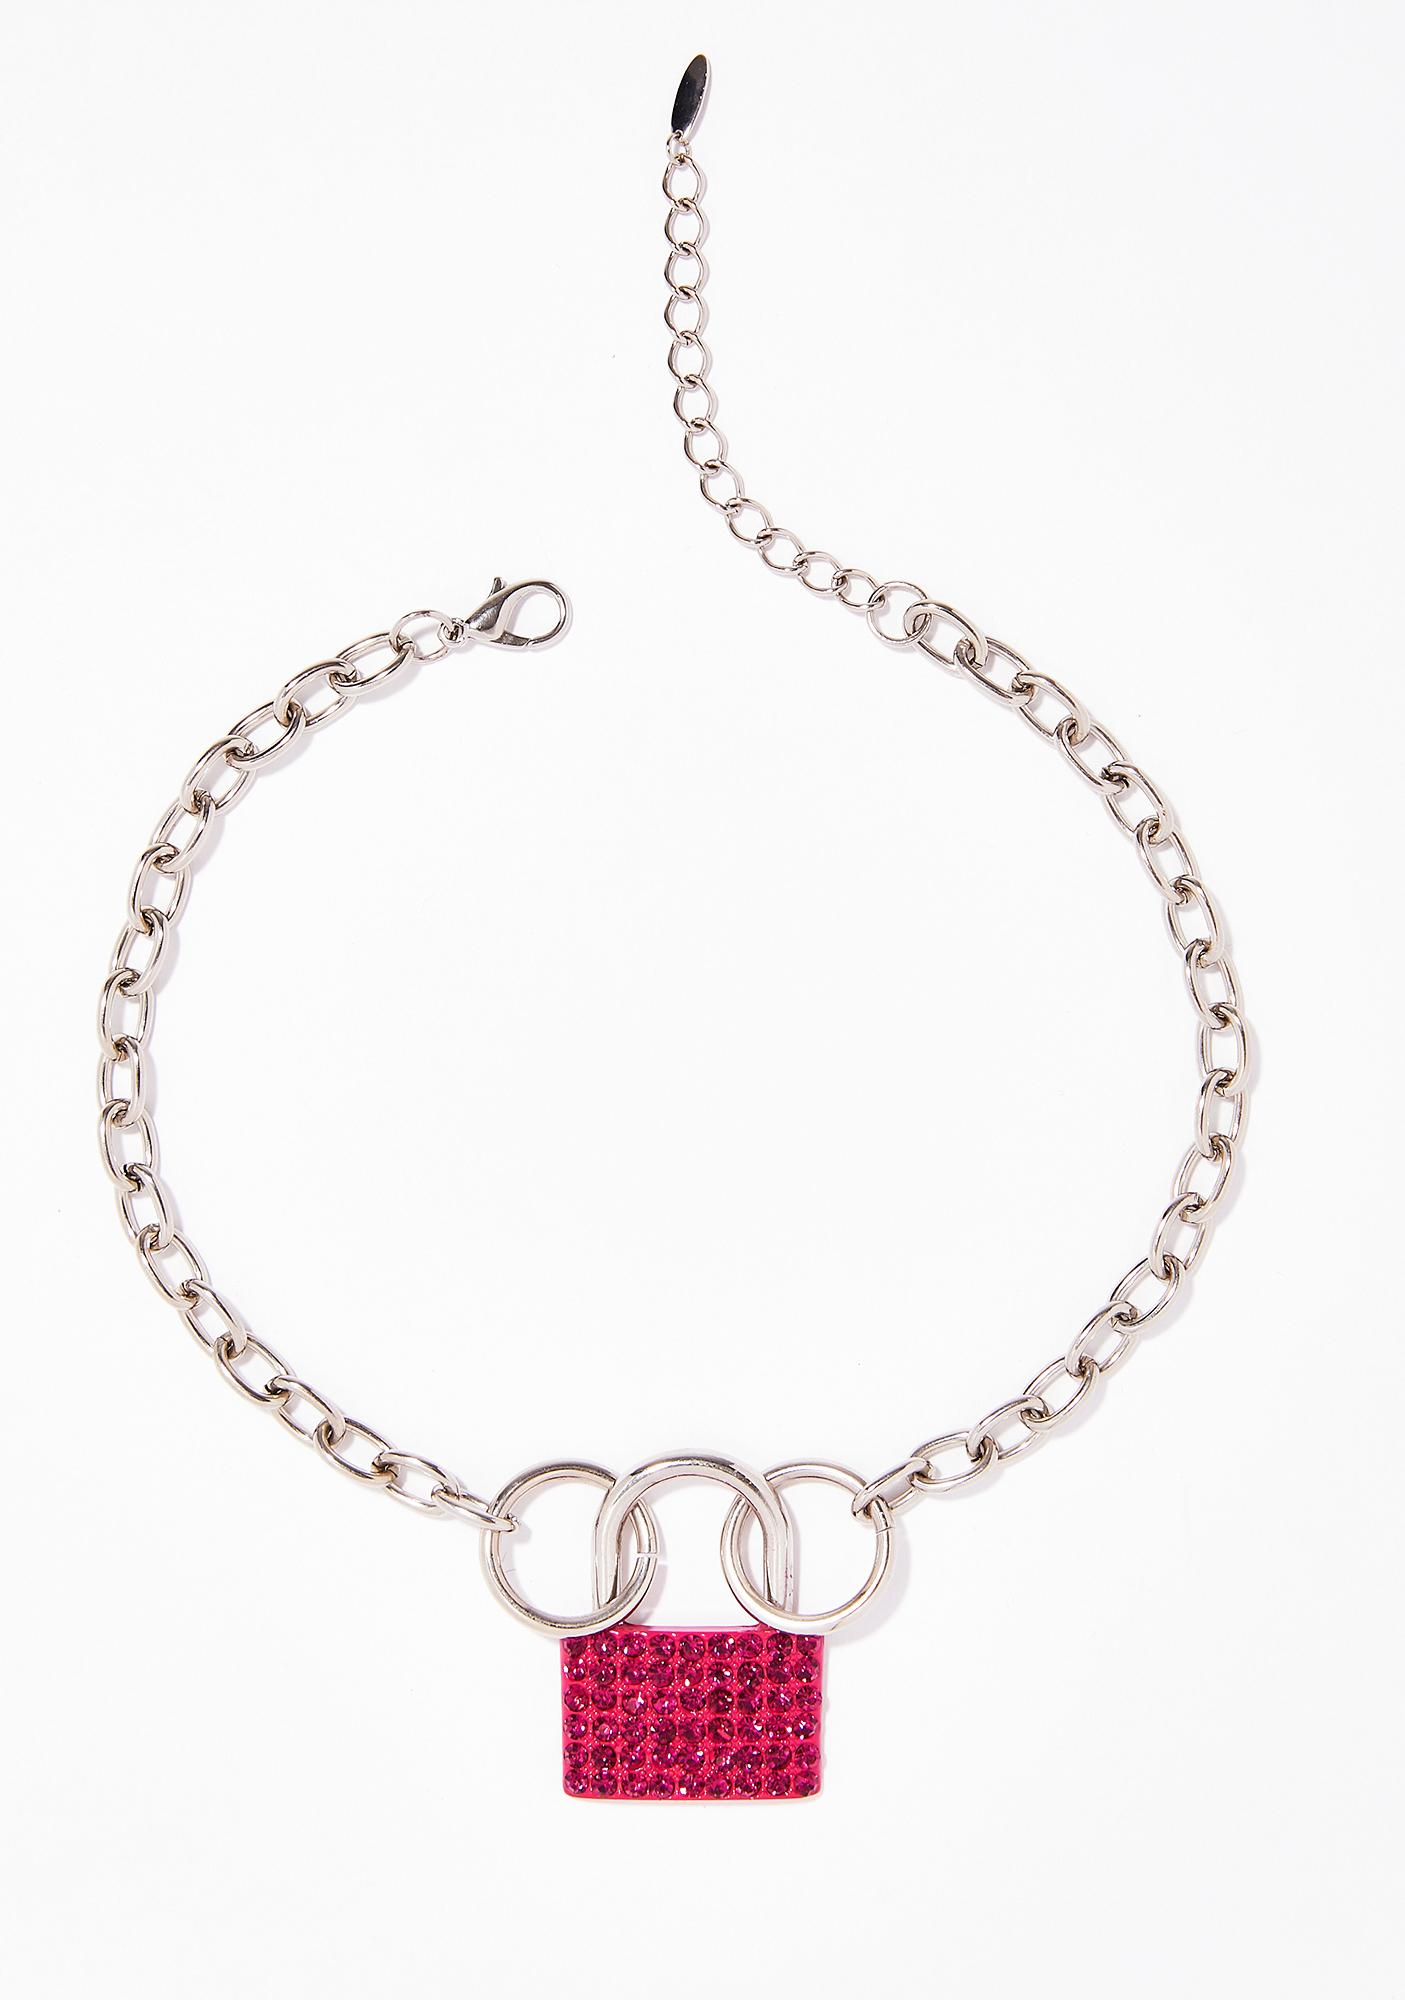 Crystal Heart Lock Necklace